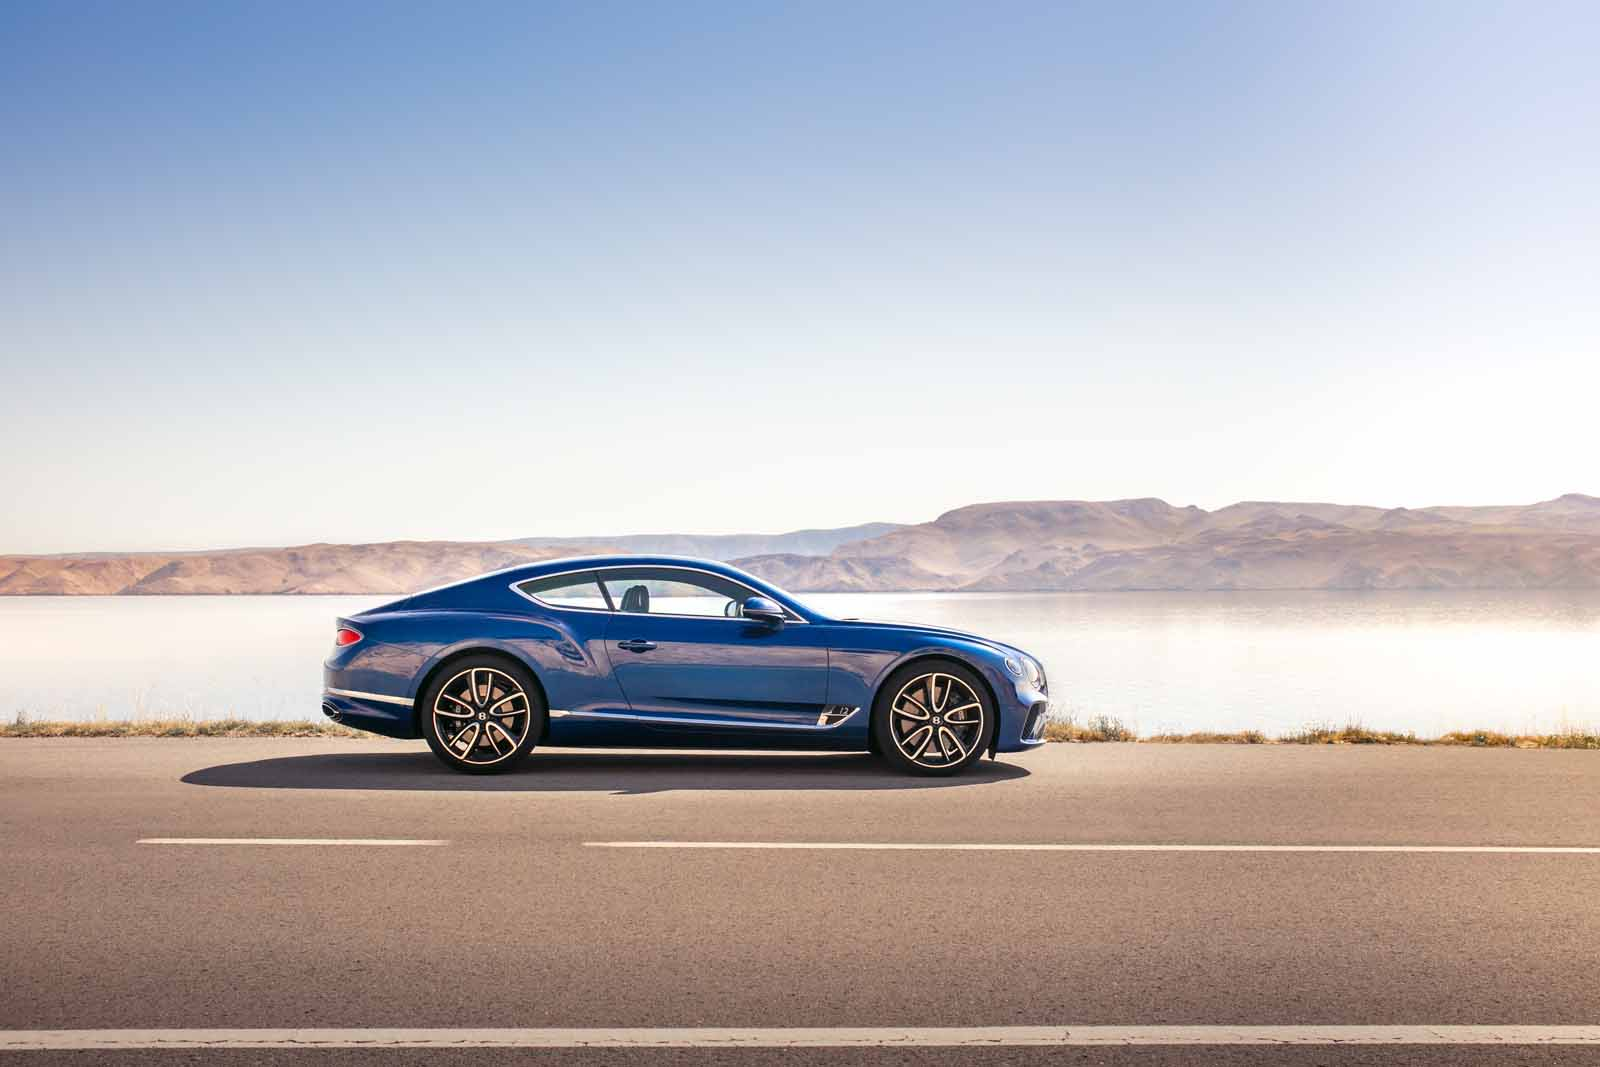 2018 Bentley Continental GT Aims to be the Ultimate Grand Tourer